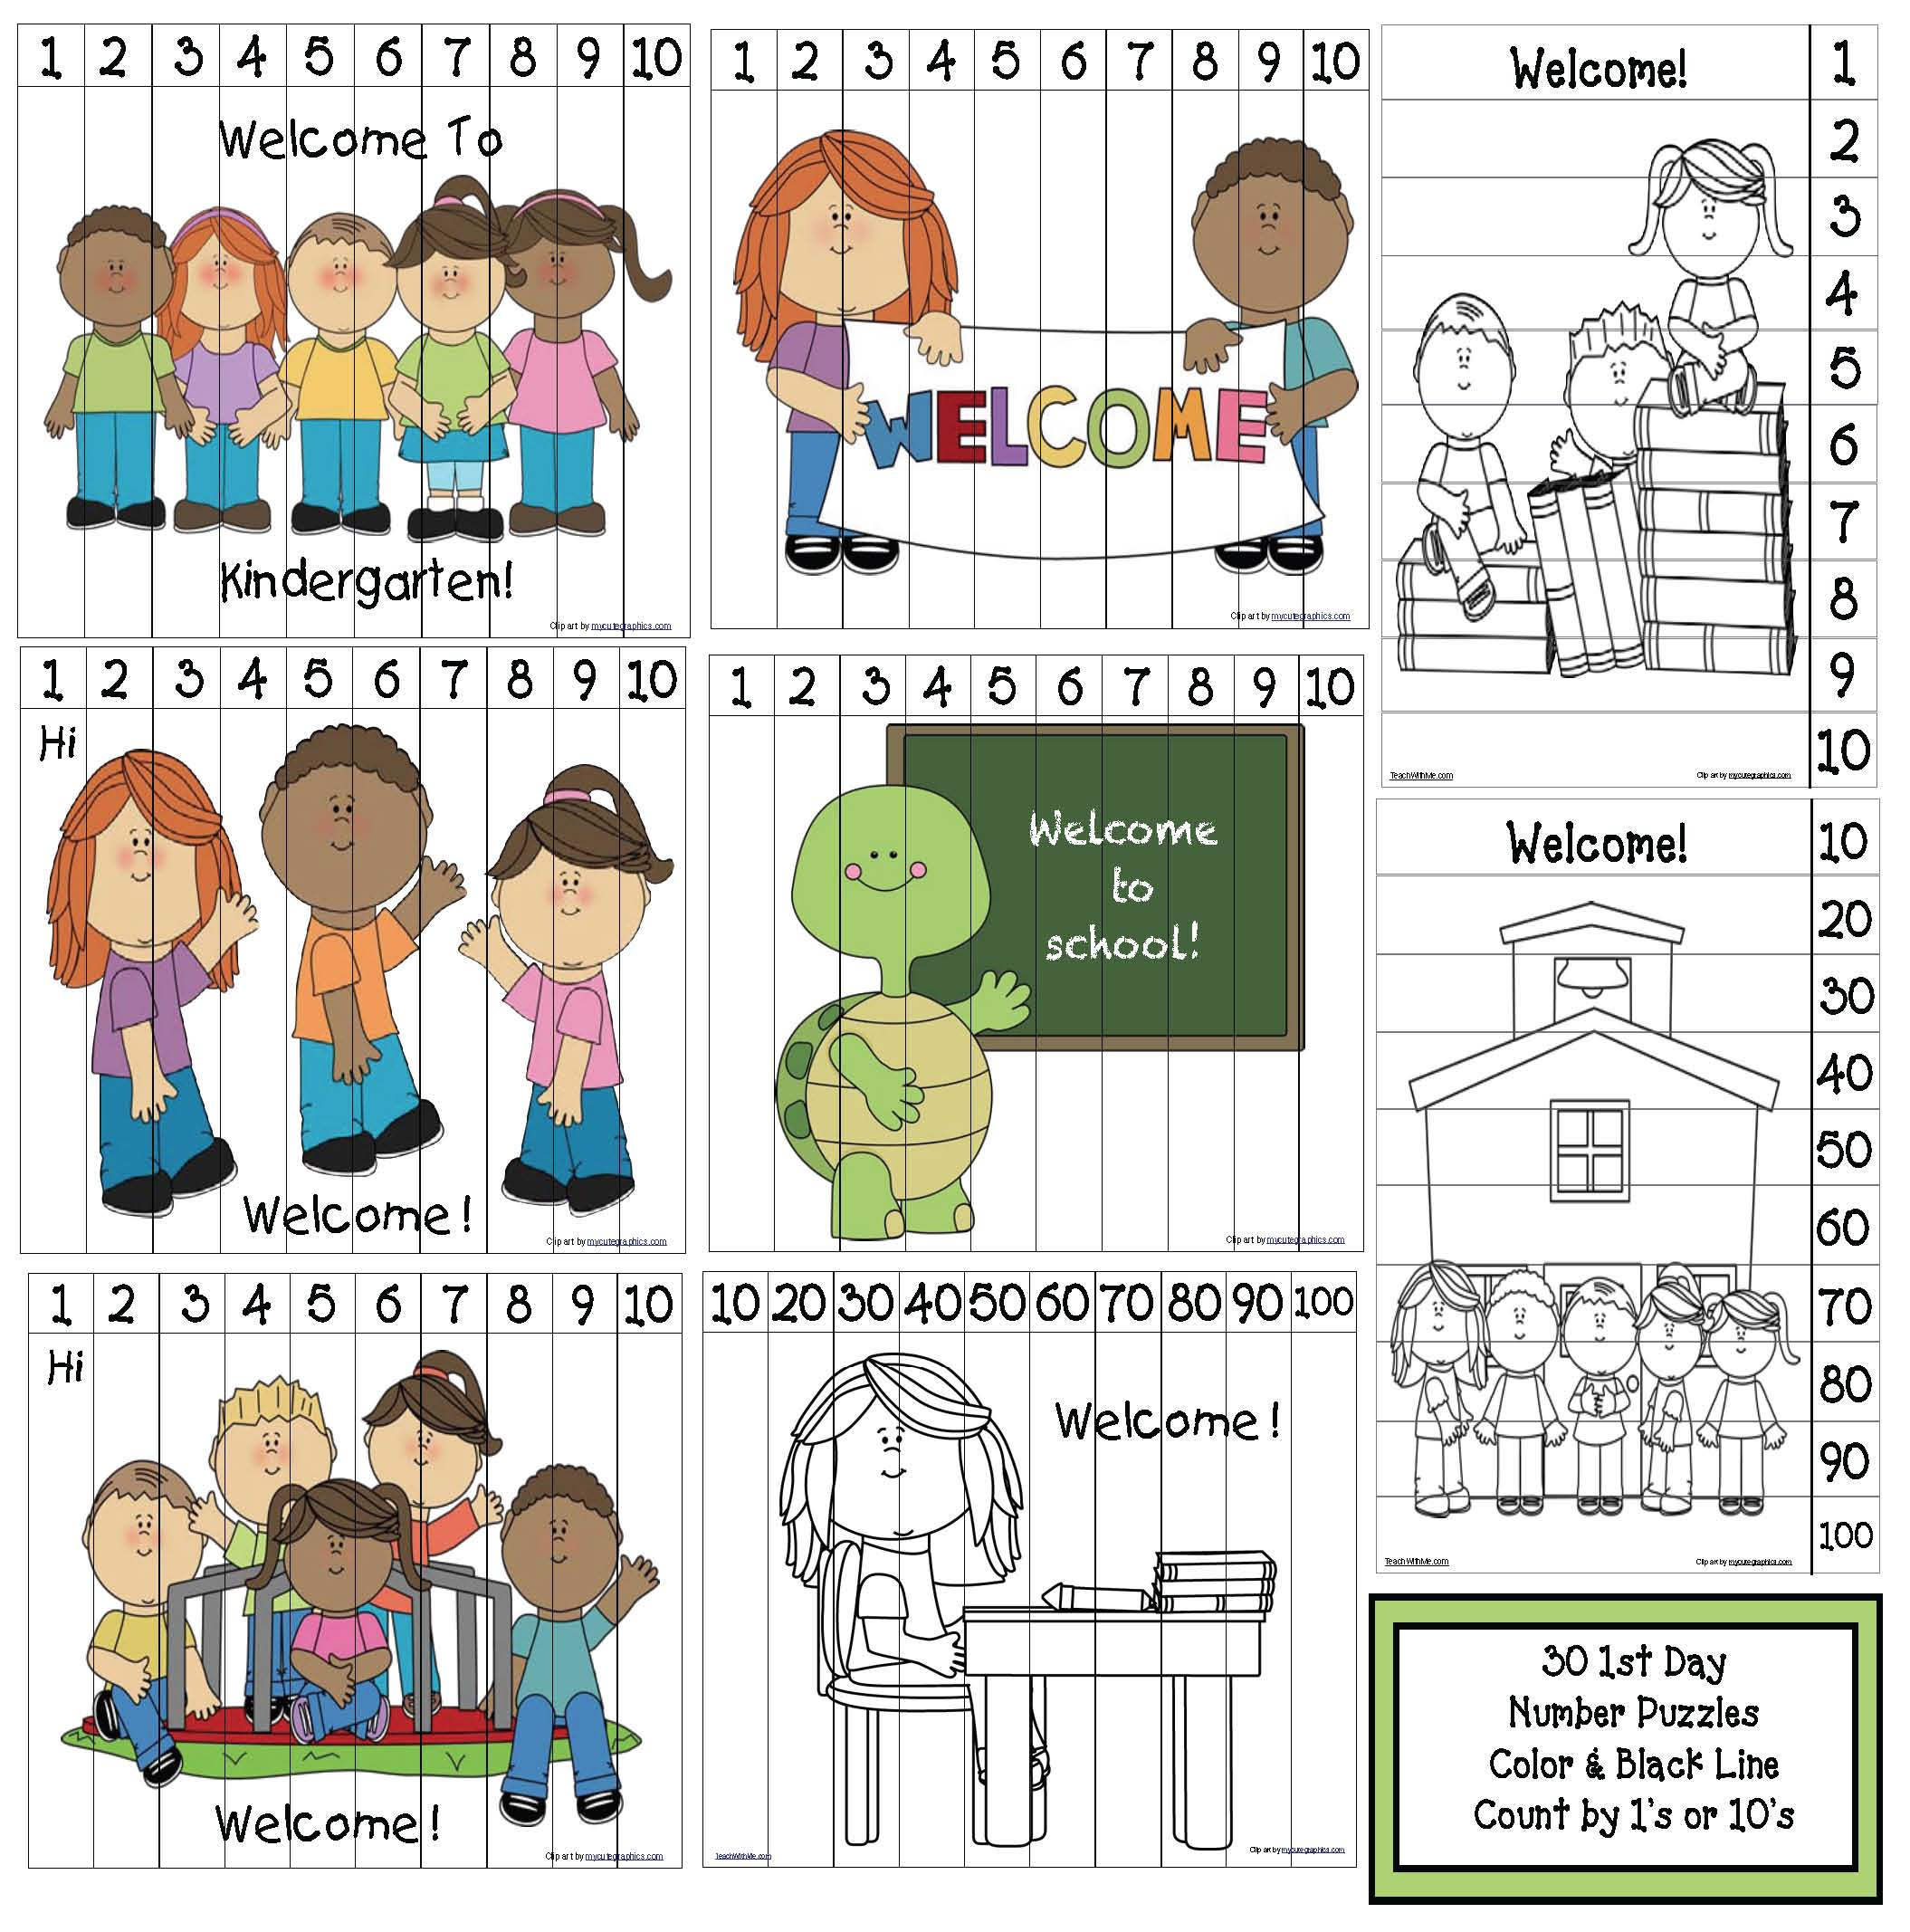 1st day of school activities, first day of school ideas, ideas for the 1st day of school, first day of school lessons, first day of school icebreakers, first day of school games, back to school bulletin boards, number puzzles, free puzzles, back to school puzzles, skip counting by 10's activities, back to school coloring pages, back to school gifts, ideas for open house, first day of school gift